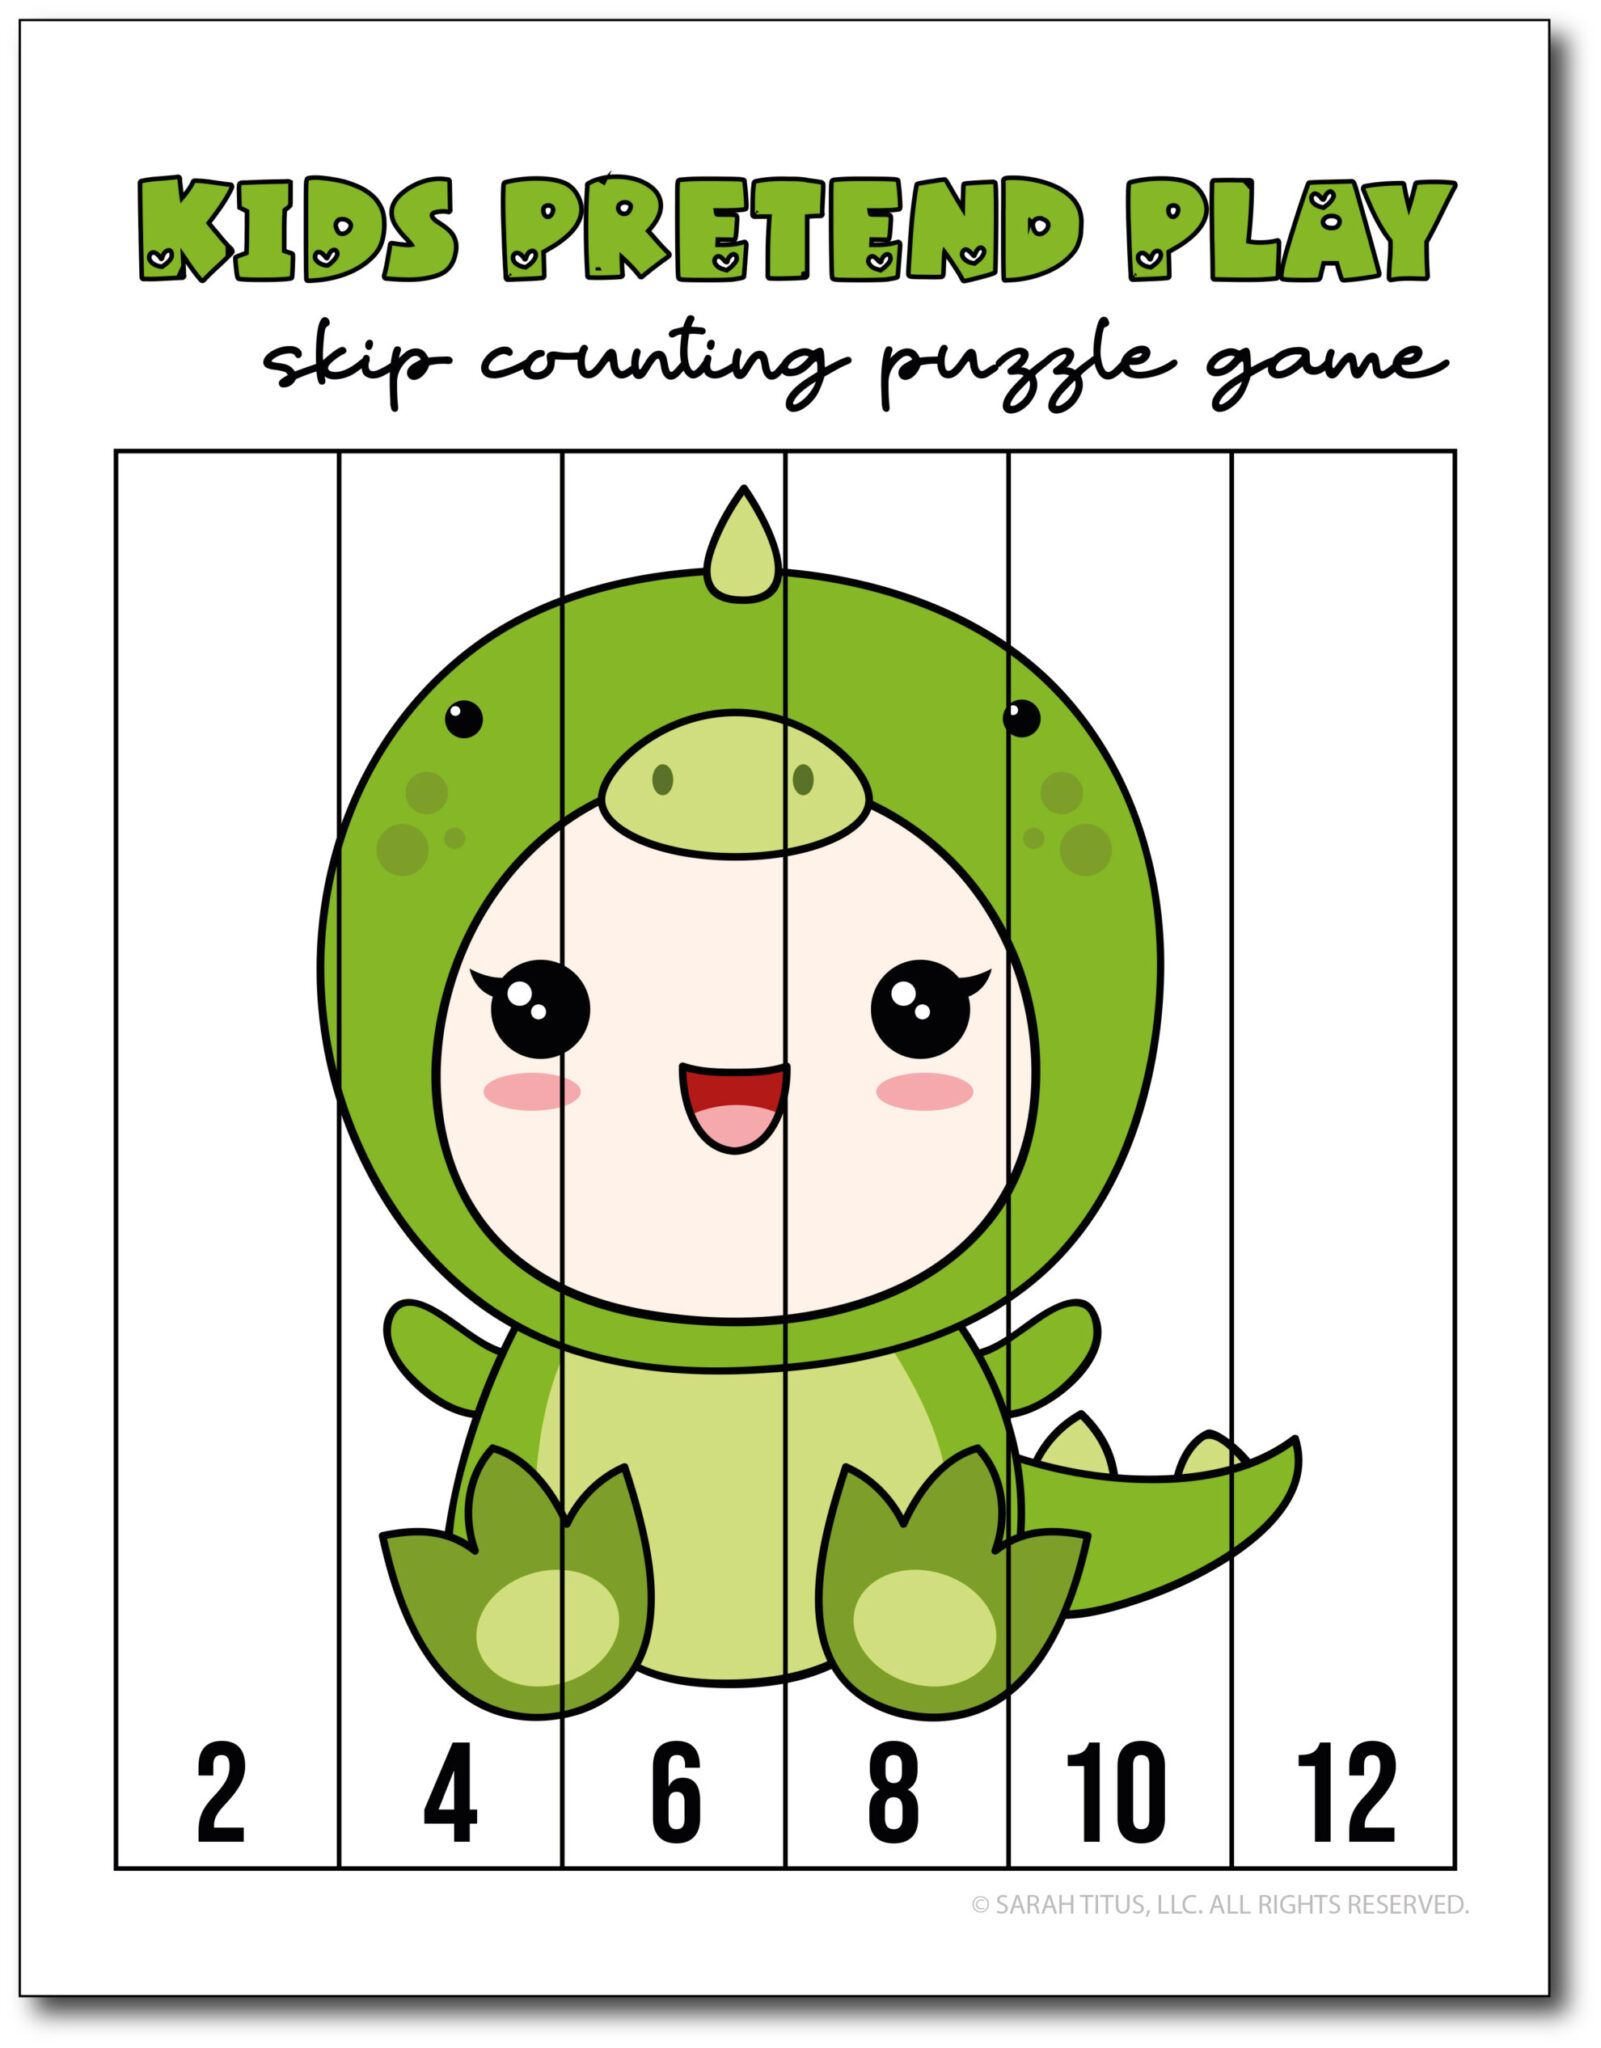 Skip Counting By 2s Game Puzzle In